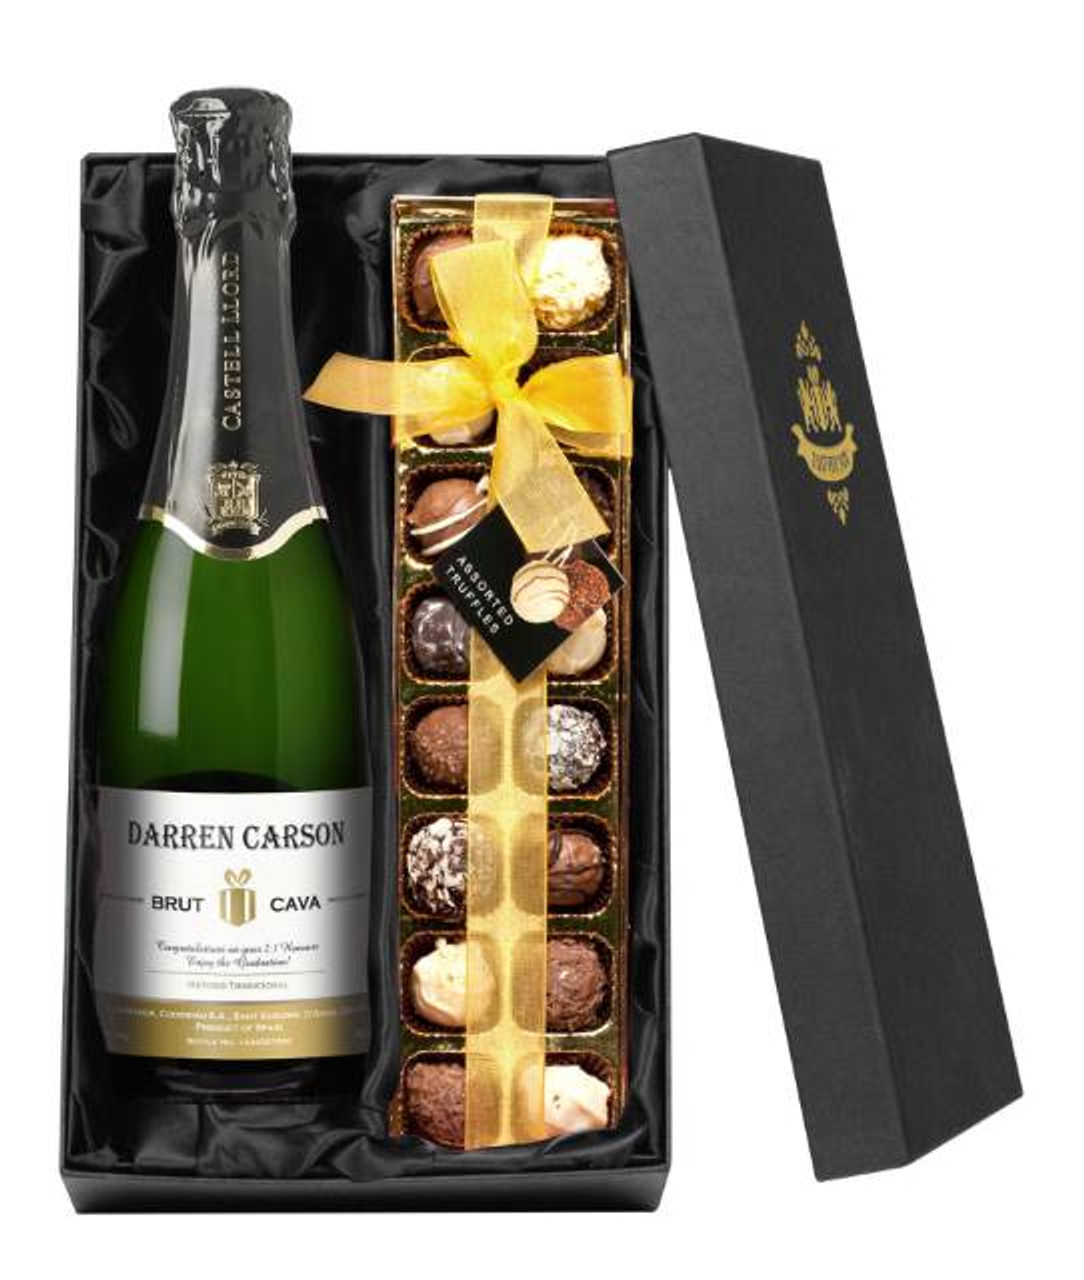 ab556244398 This luxury giftset is both unique and delicious, the perfect way to  celebrate a special